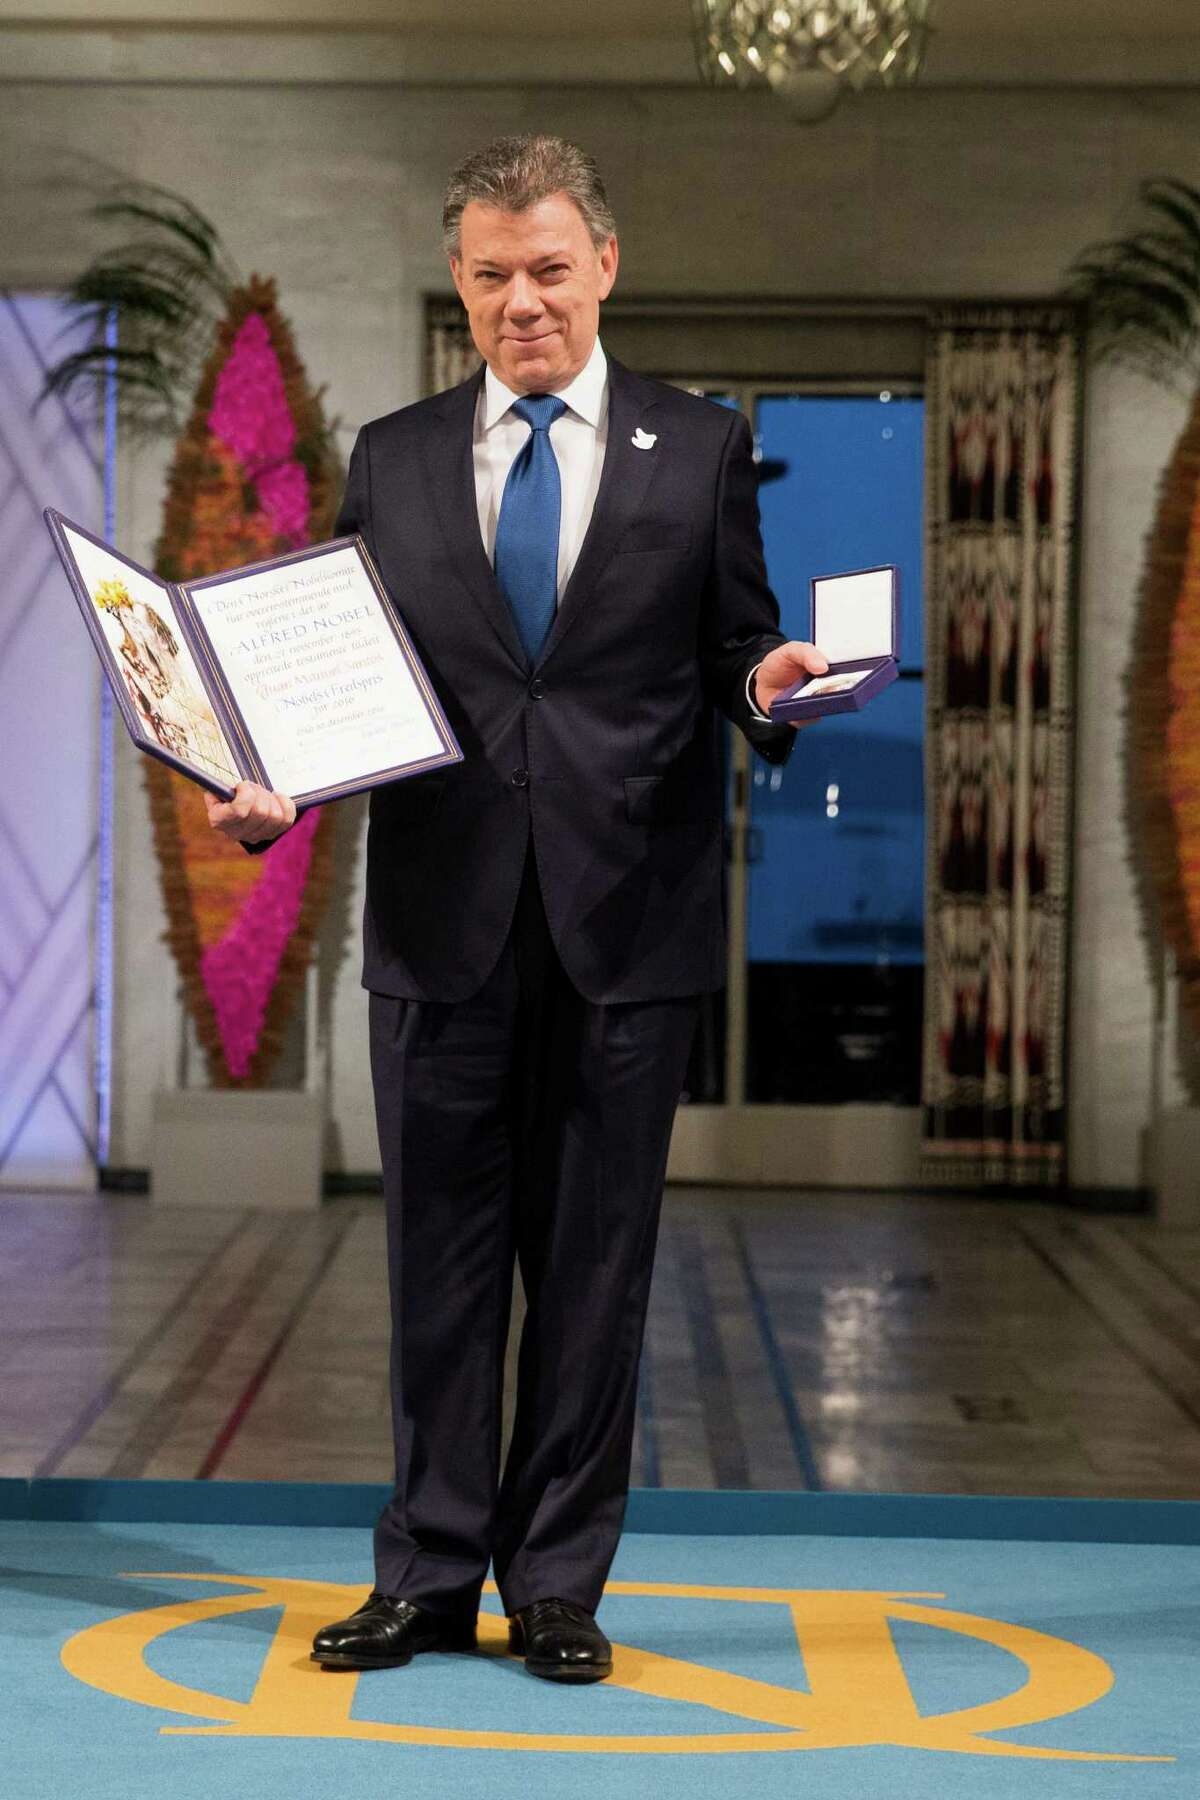 Nobel Peace Prize Laureate Colombian President Juan Manuel Santos poses with the medal and diploma following the Nobel awarding ceremony at the City Hall in Oslo, Saturday Dec. 10, 2016. Colombian President Juan Manuel Santos is awarded this year's Nobel Peace Prize for his efforts to bring Colombia's more than 50-year-long civil war to an end. (Haakon Mosvold Larsen/ NTB scanpix via AP)